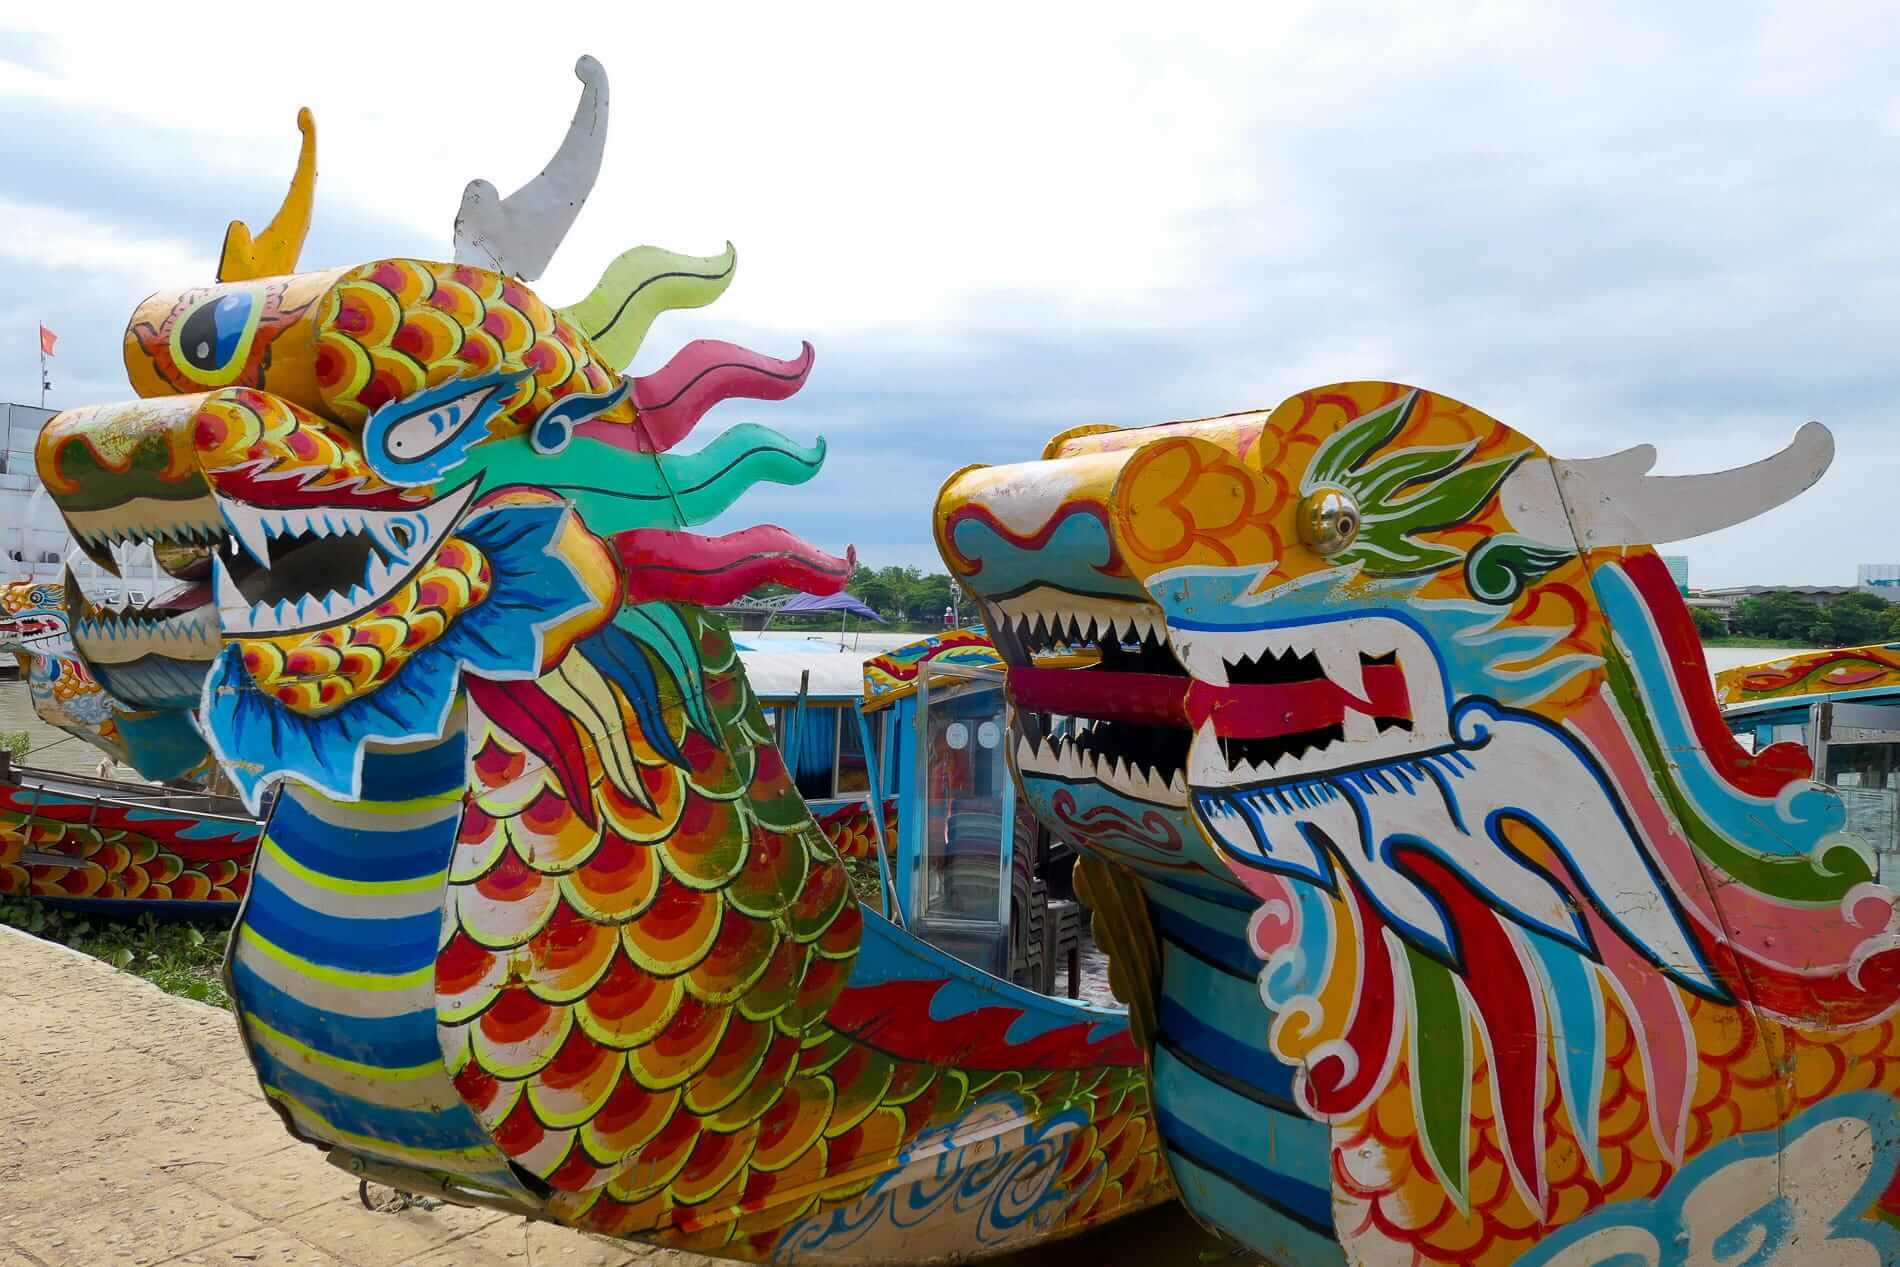 Dragon figureheads on the tour boats in Hue City